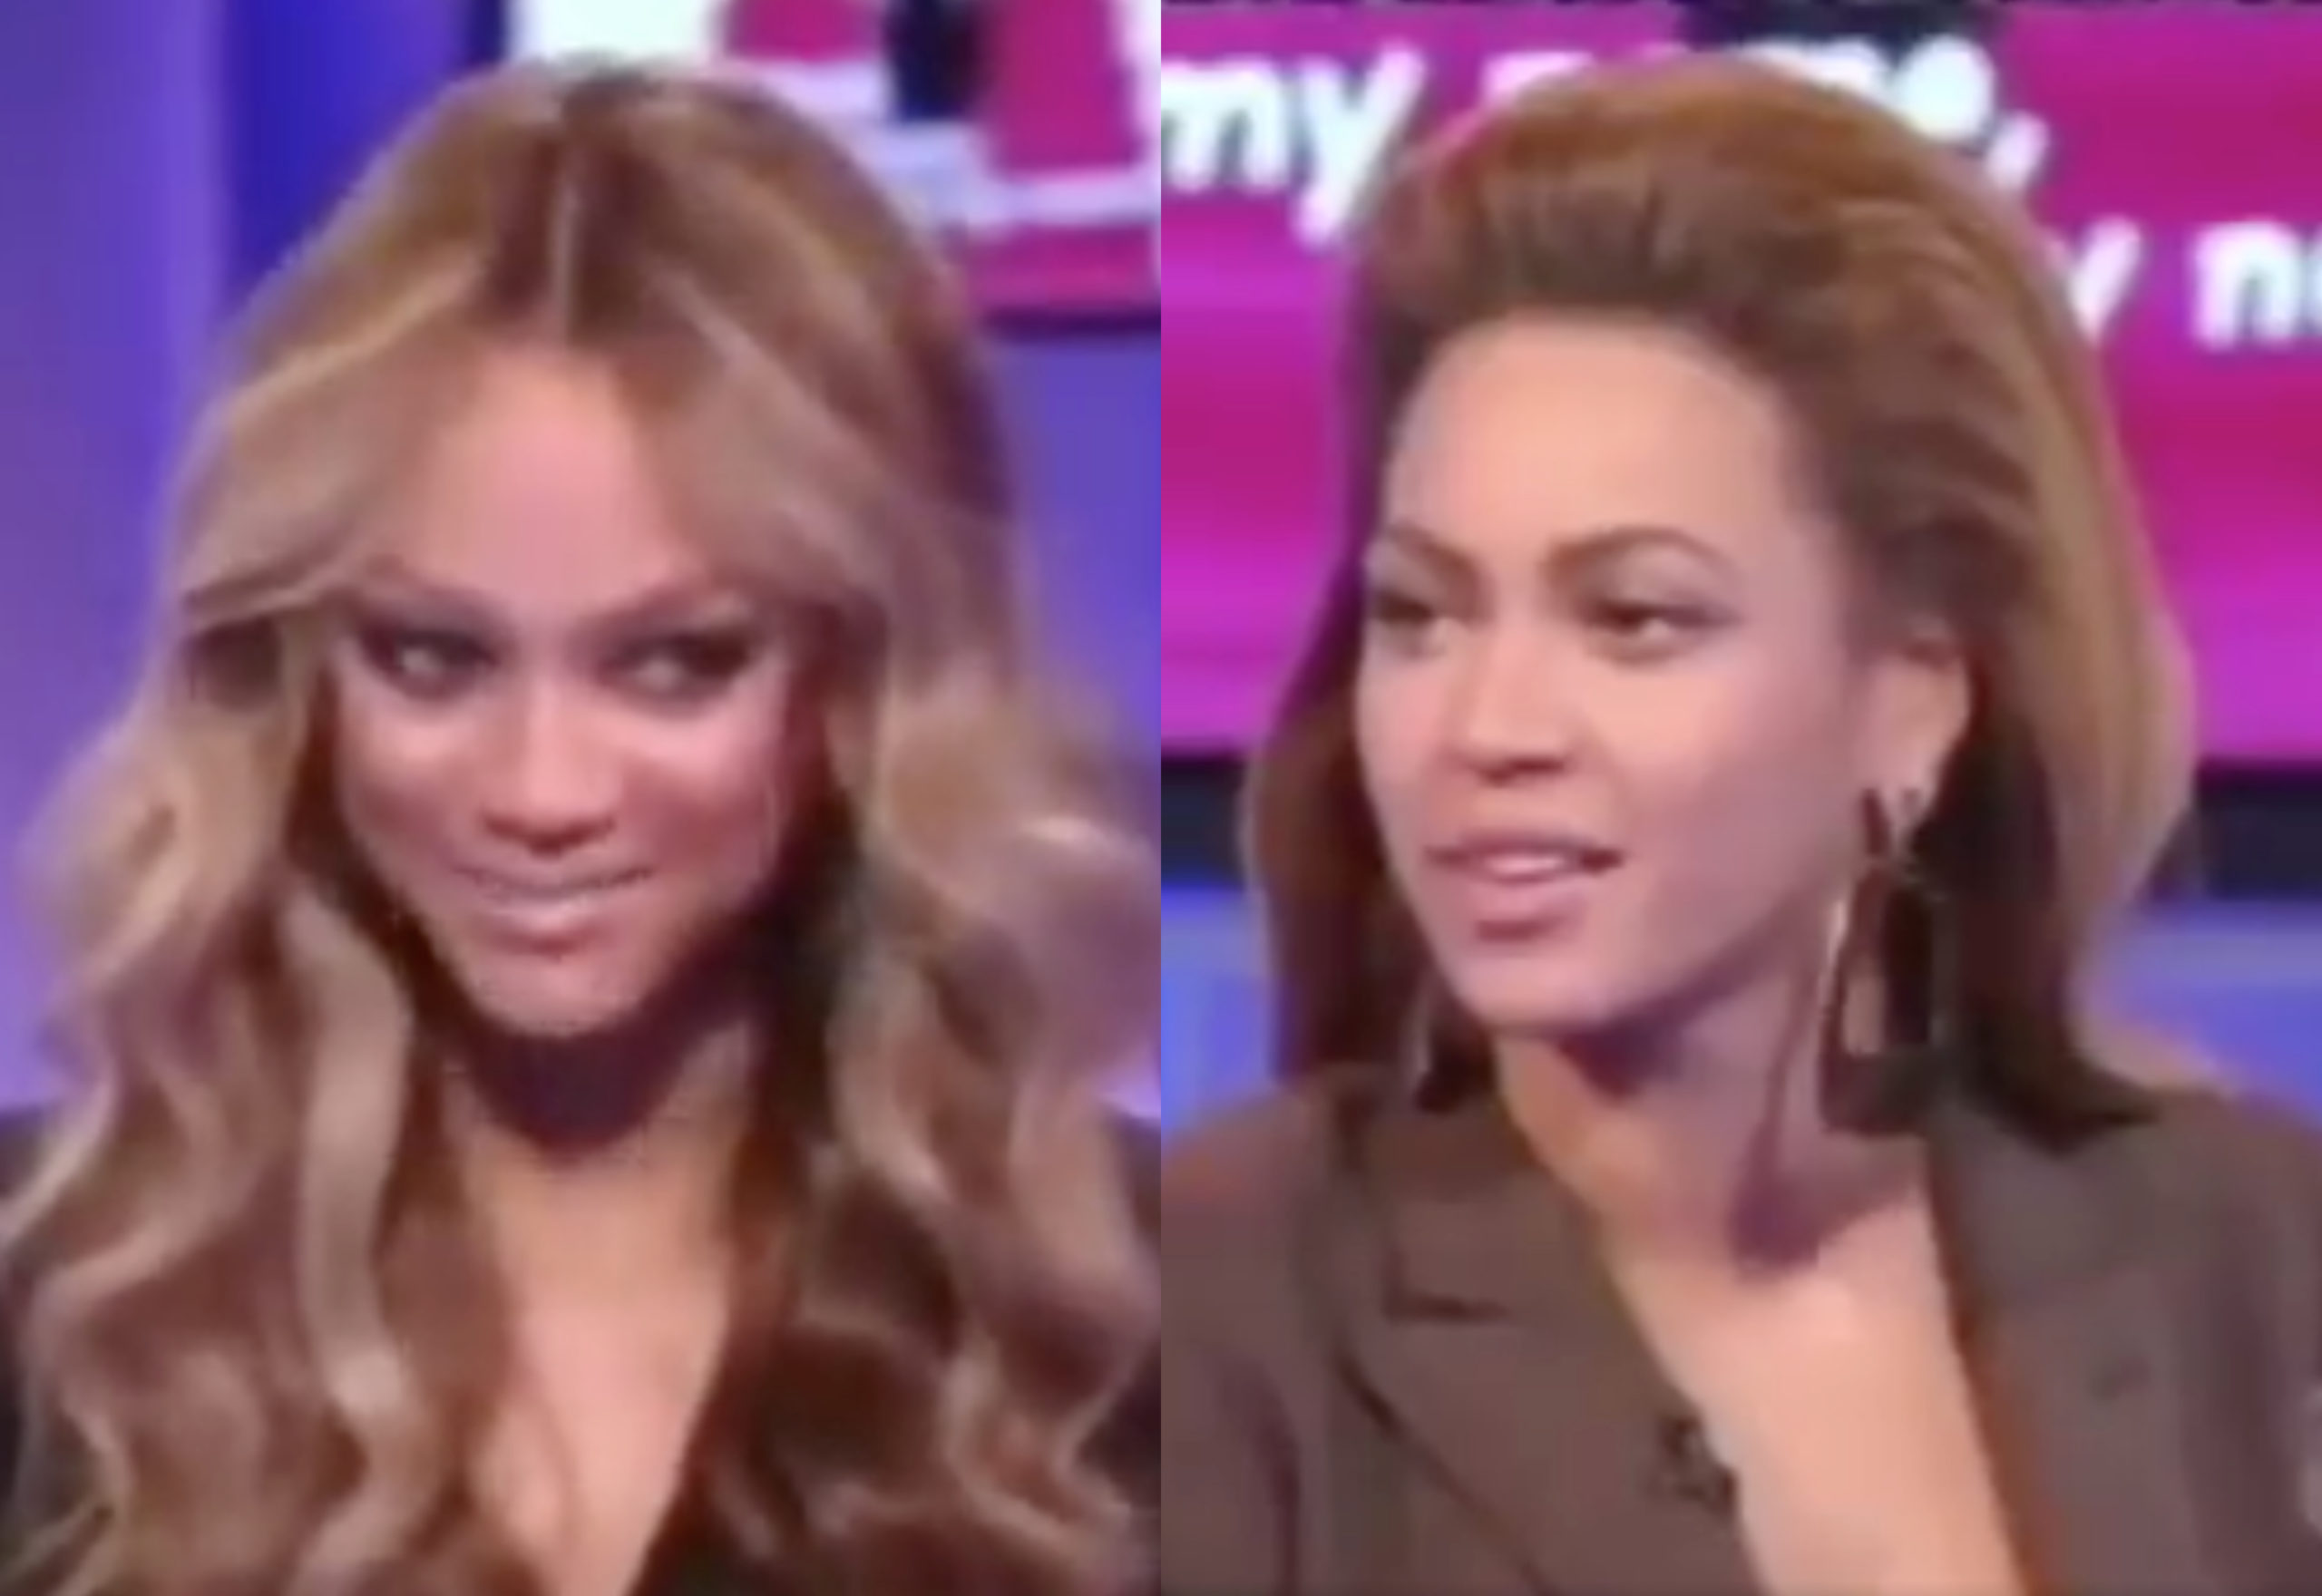 """Tyra Banks is """"sorry, not sorry"""" after her 2008 interview with Beyoncé went viral in 2020. (Screen captures via Twitter)"""